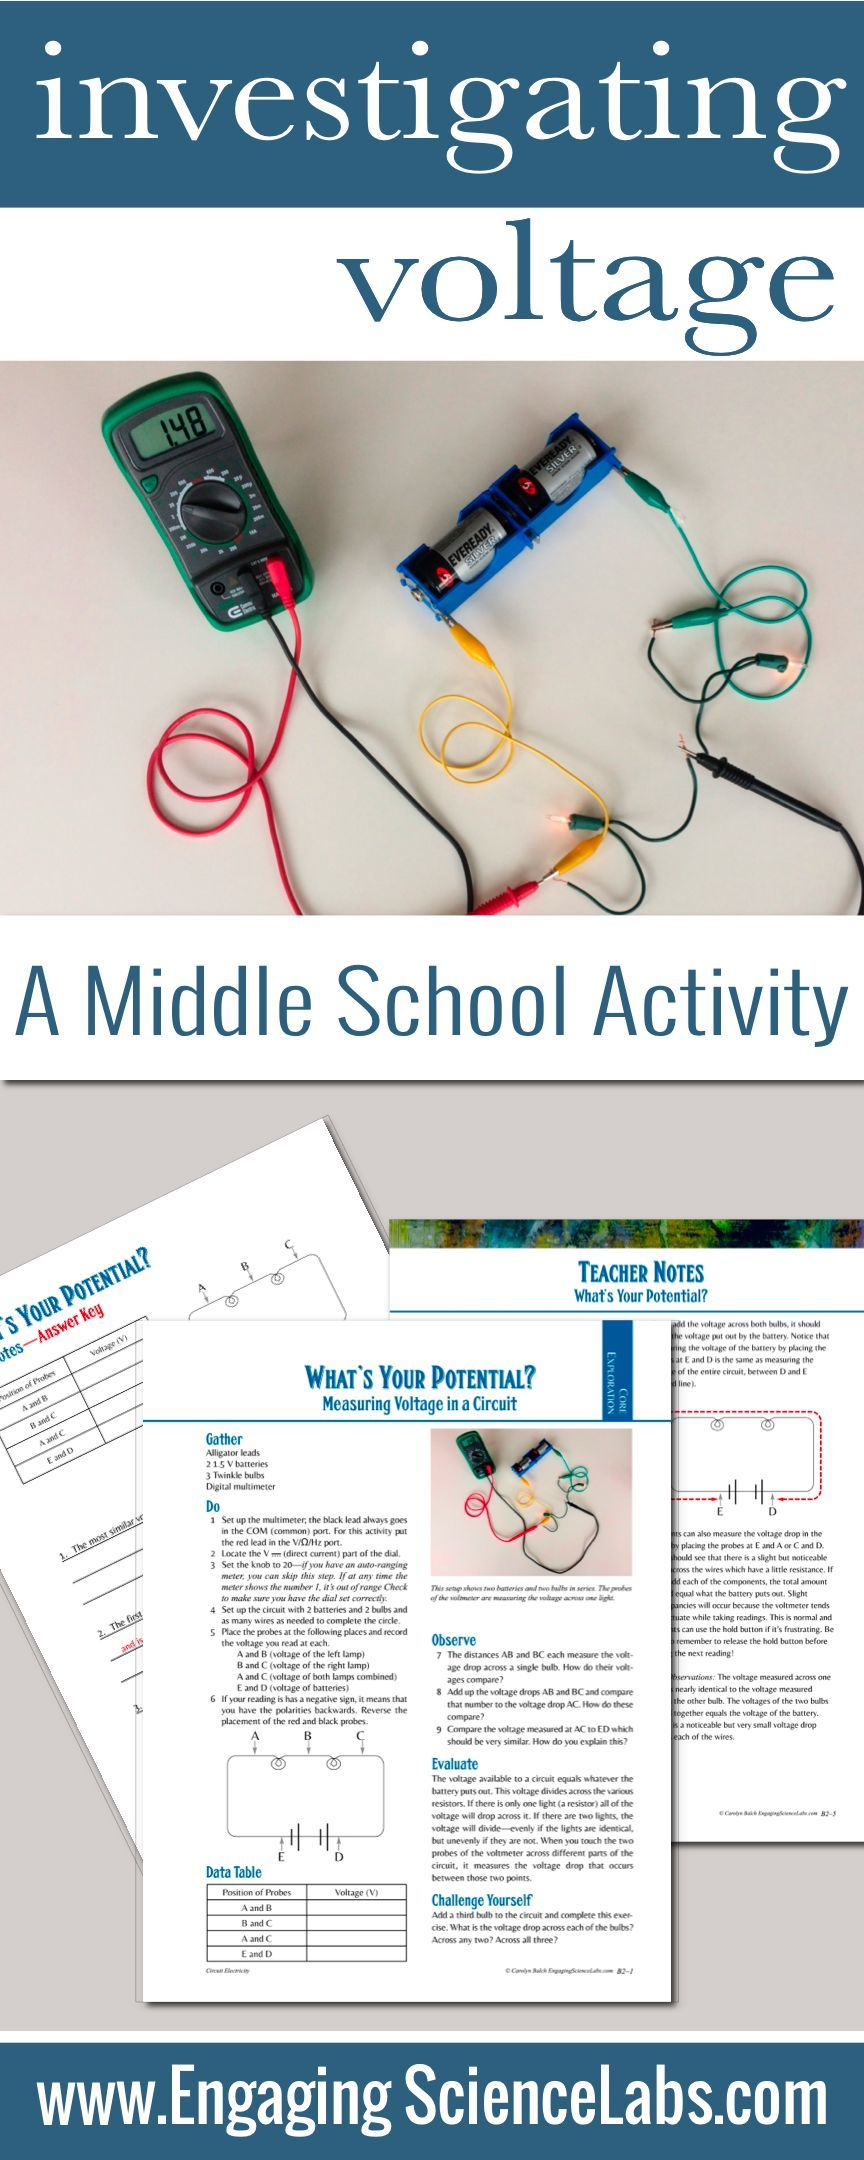 Electric Circuits Measuring Voltage In Hands On Lab Other Similar Activity Pinterest Circuit Science Curriculum And Classroom Resources